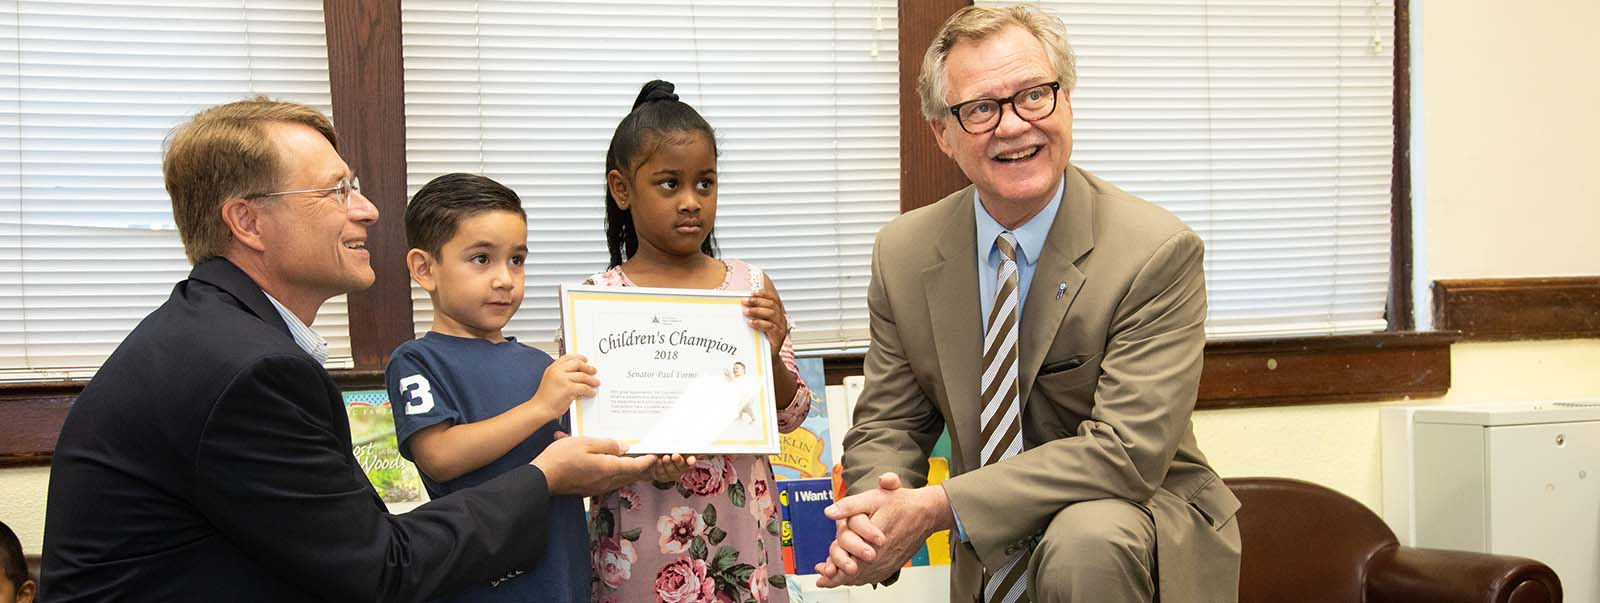 Senator Formica Named 2018 Children's Champion